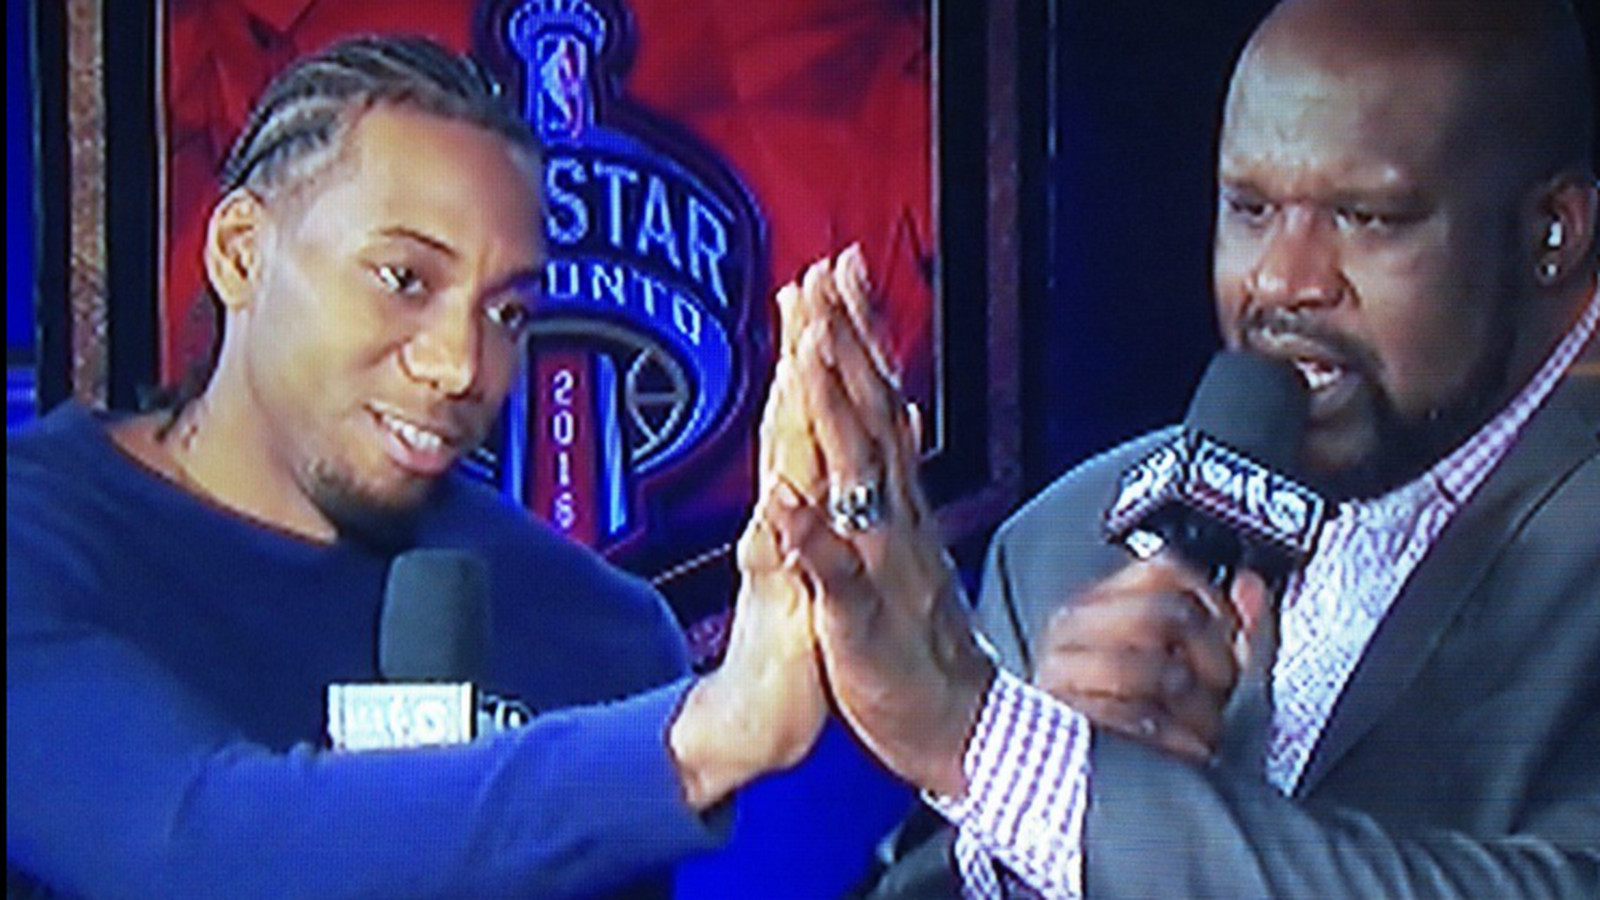 Kawhi Leonard has hands the size of Shaq and still somehow ...